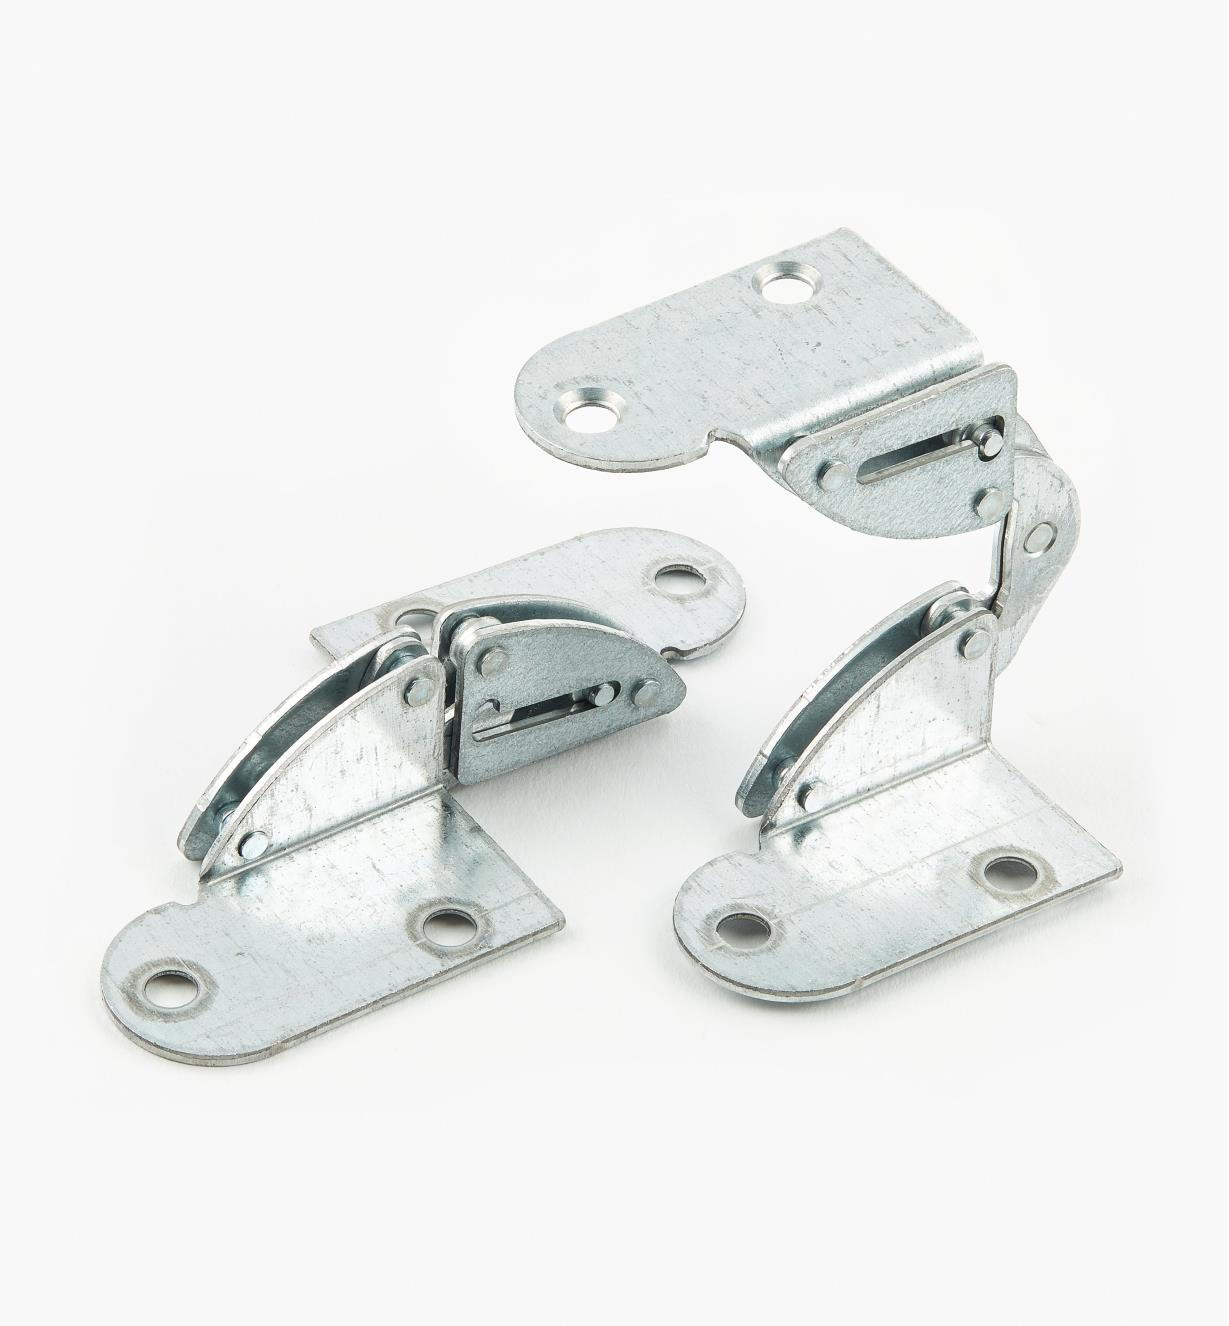 17K1550 - Folding Leaf Hinges, 18mm